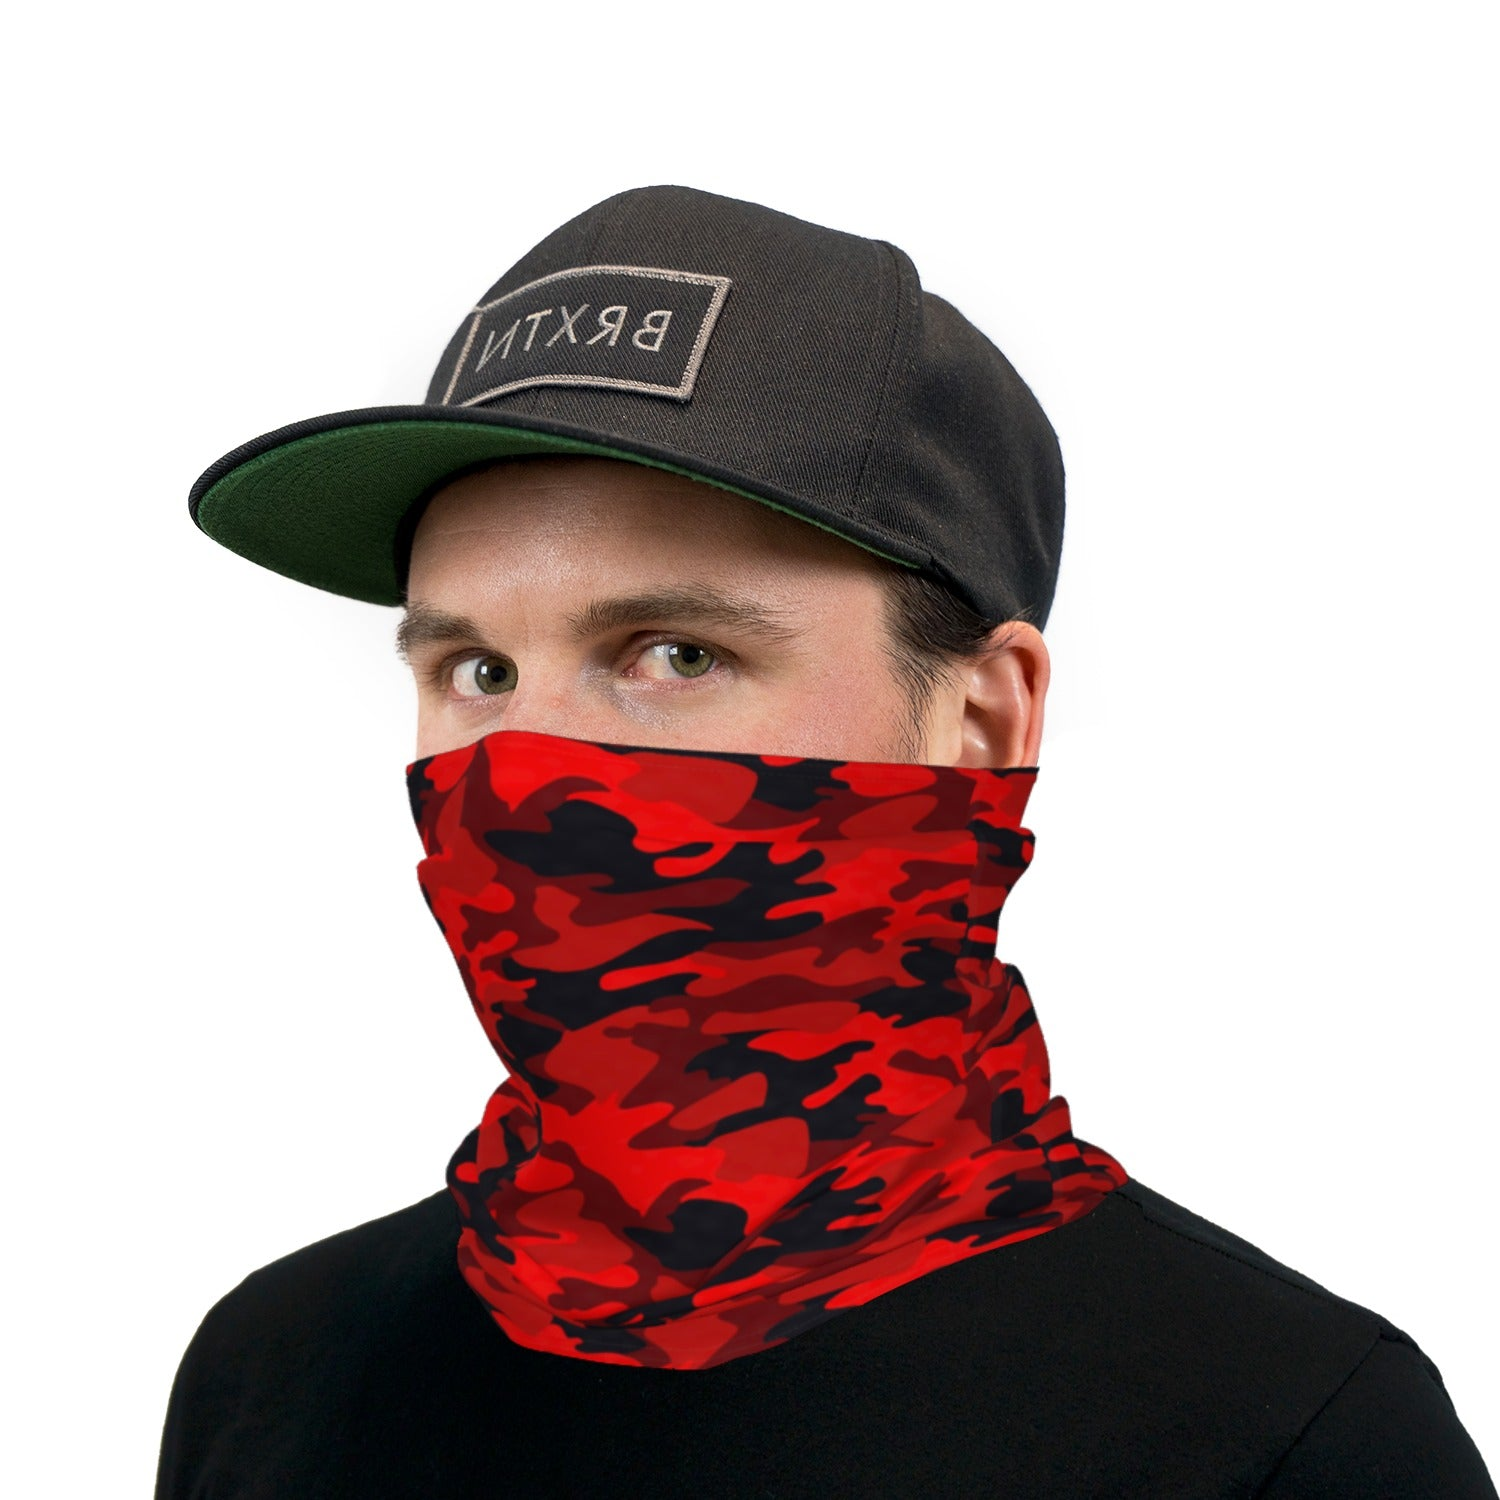 Dark Red and Black Camouflage Neck Gaiter Face Mask